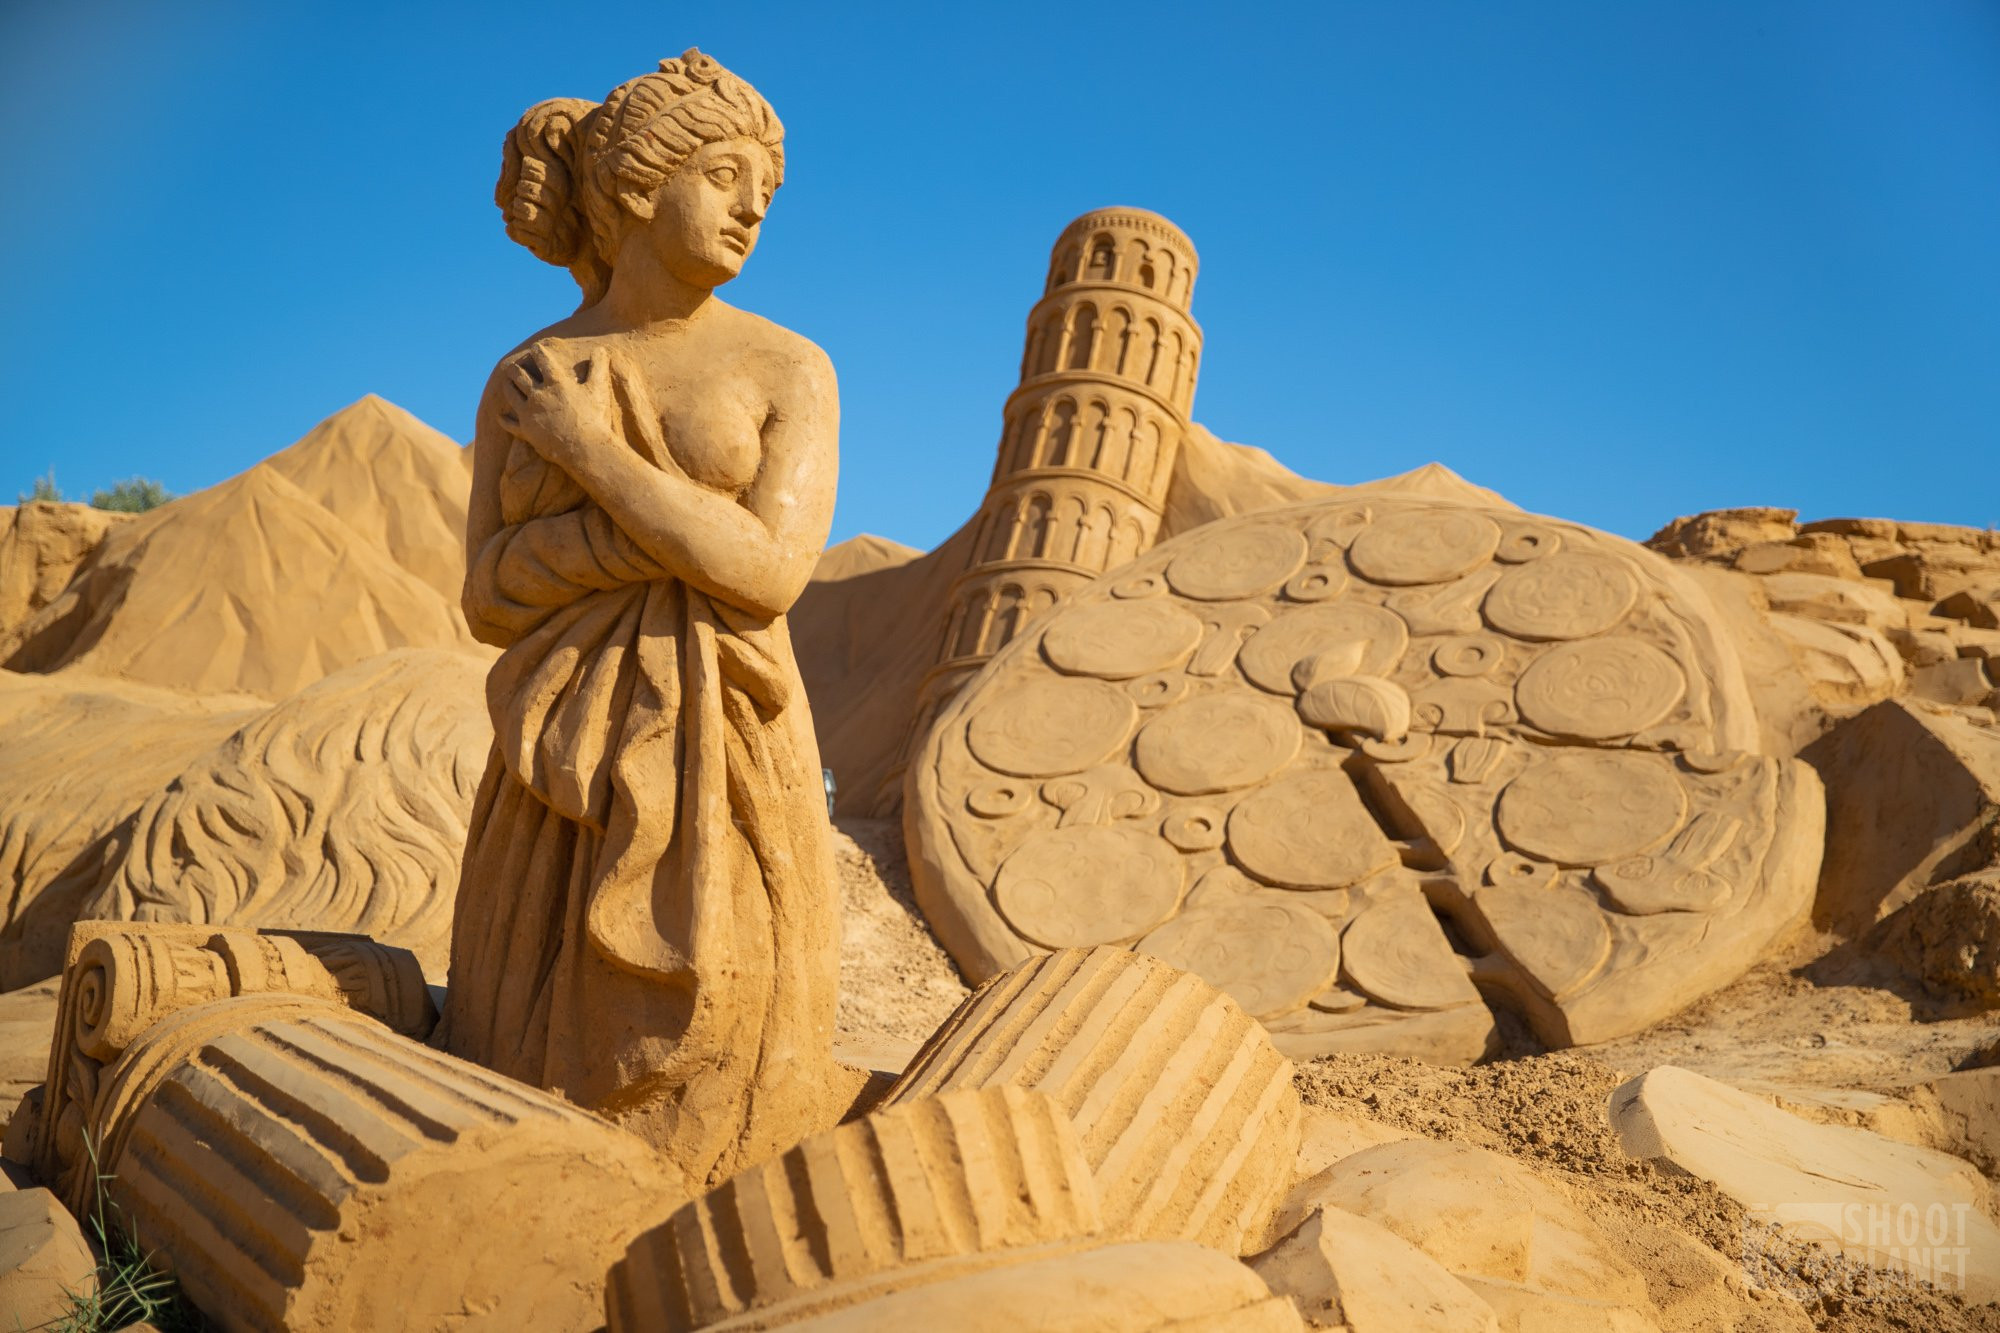 Sand city statues, Lagos Portugal